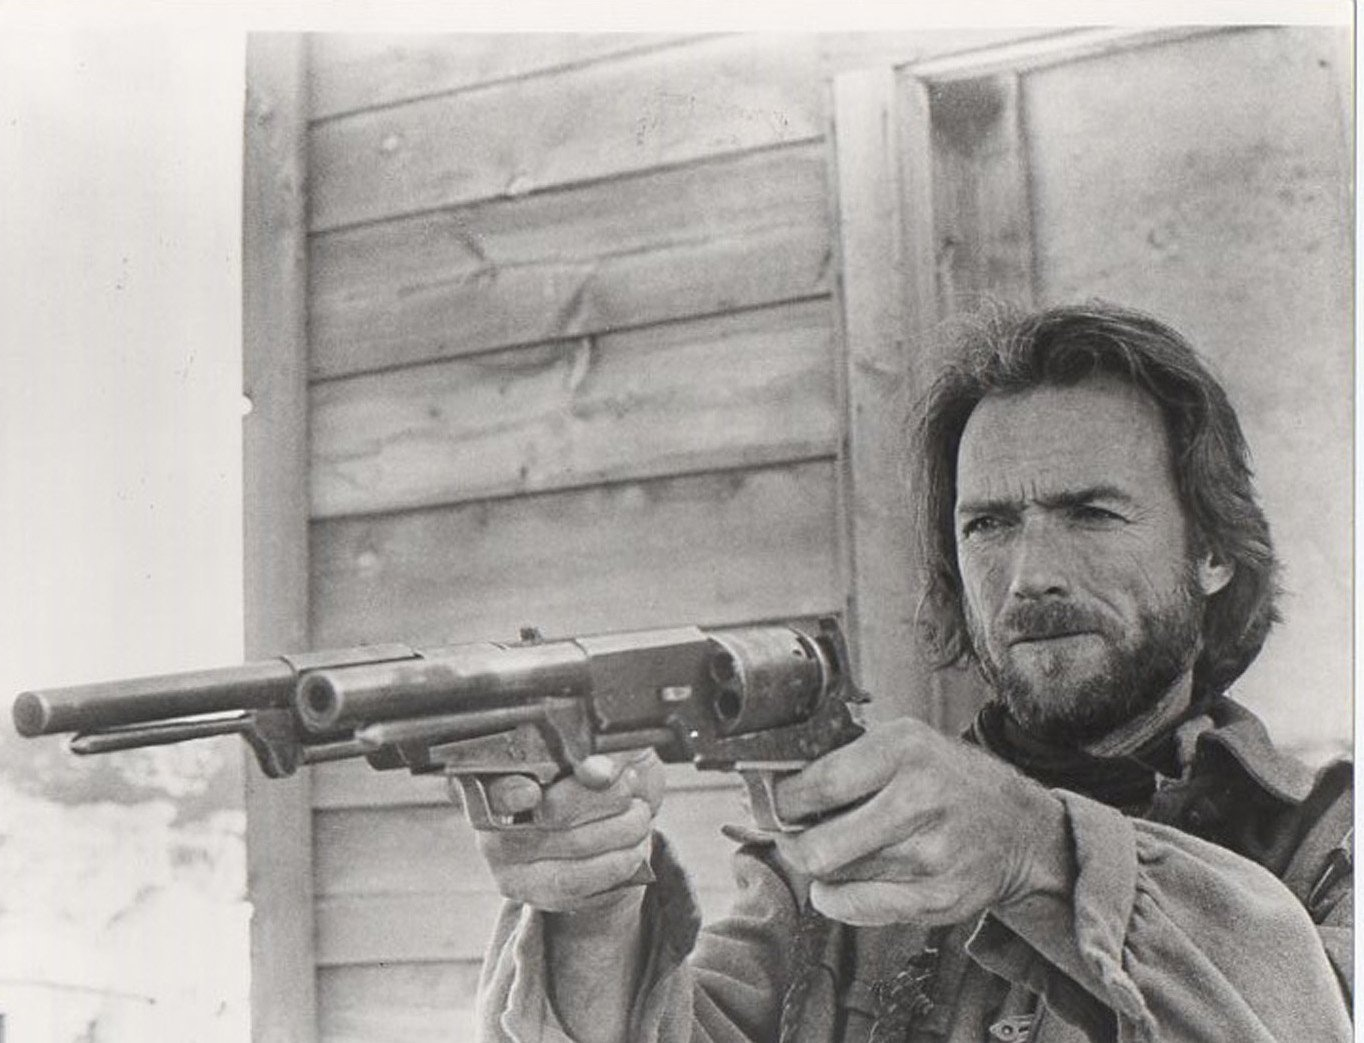 2016_06_christied_clint-eastwood-in-the-outlaw-josey-wales.jpg